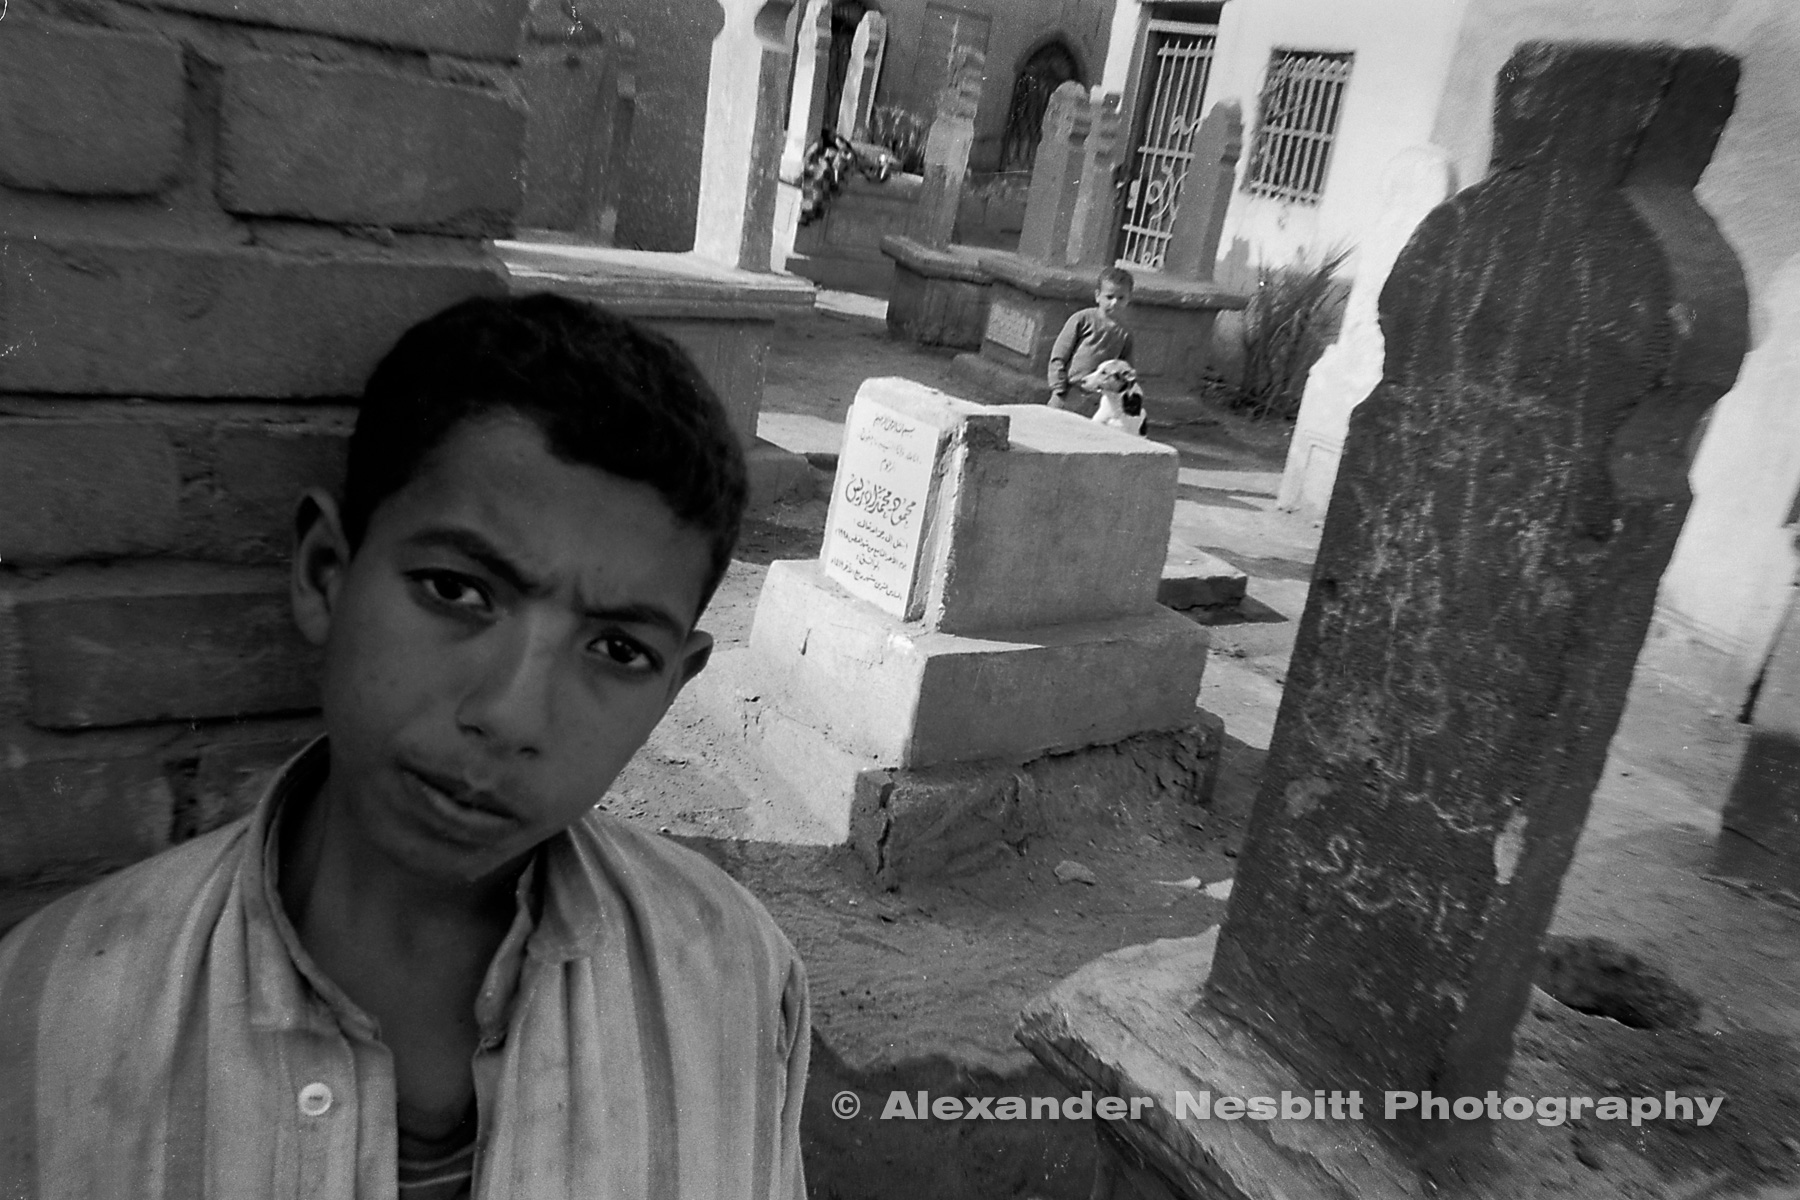 Some 1/2 million people inhabit the massive, 7km long cemetery that borders the easter side of Cairo.  They form a complete civilization living on top of, within, and around the graves of their ancestors.